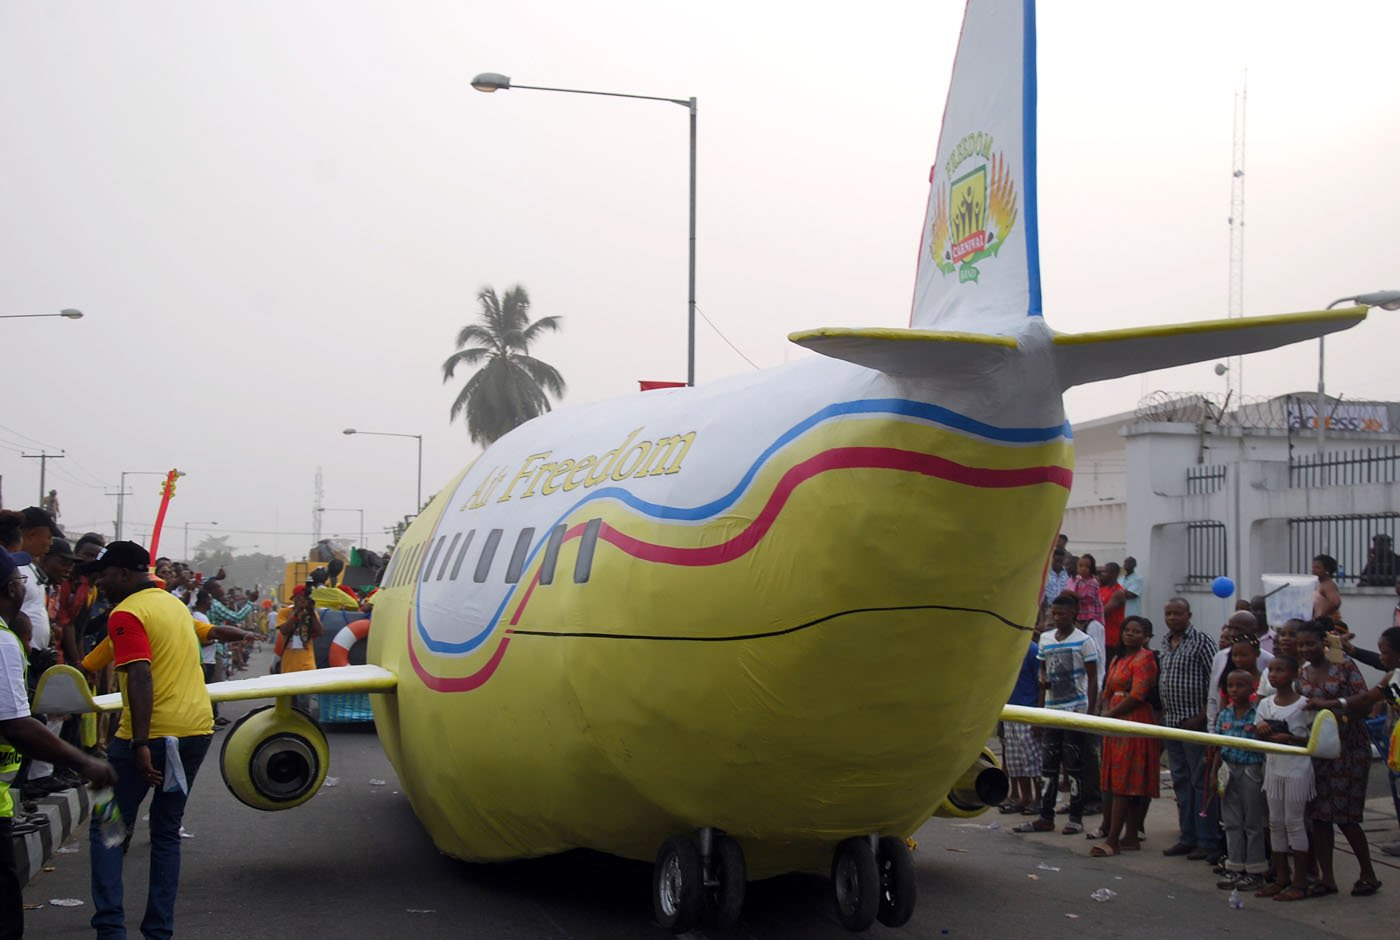 A Dummy Aircraft designed by Freedom Band during the Main Event of the 2017 Carnival Calabar in Cross River State Yesterday. Photo: Nwankpa Chijioke